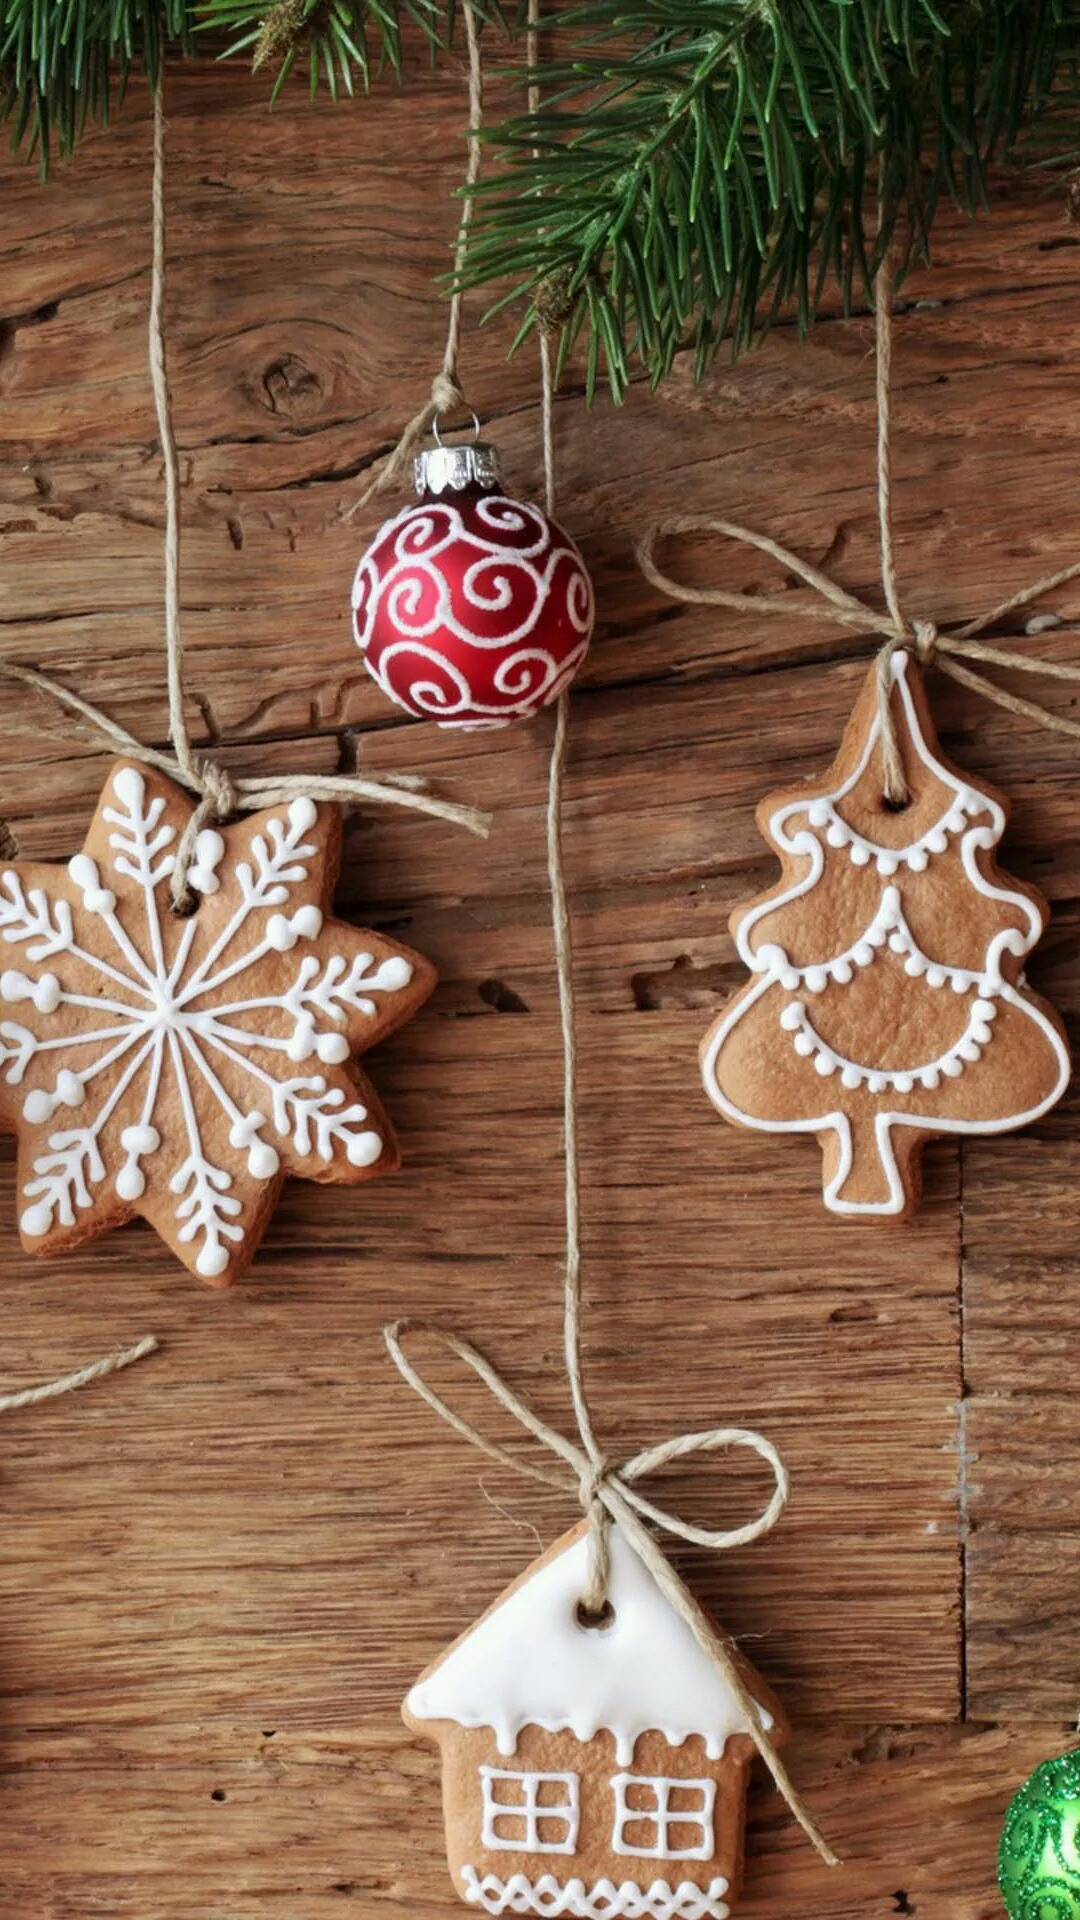 Christmas Cookies Wallpaper  Download Christmas cookies ornaments 1080 x 1920